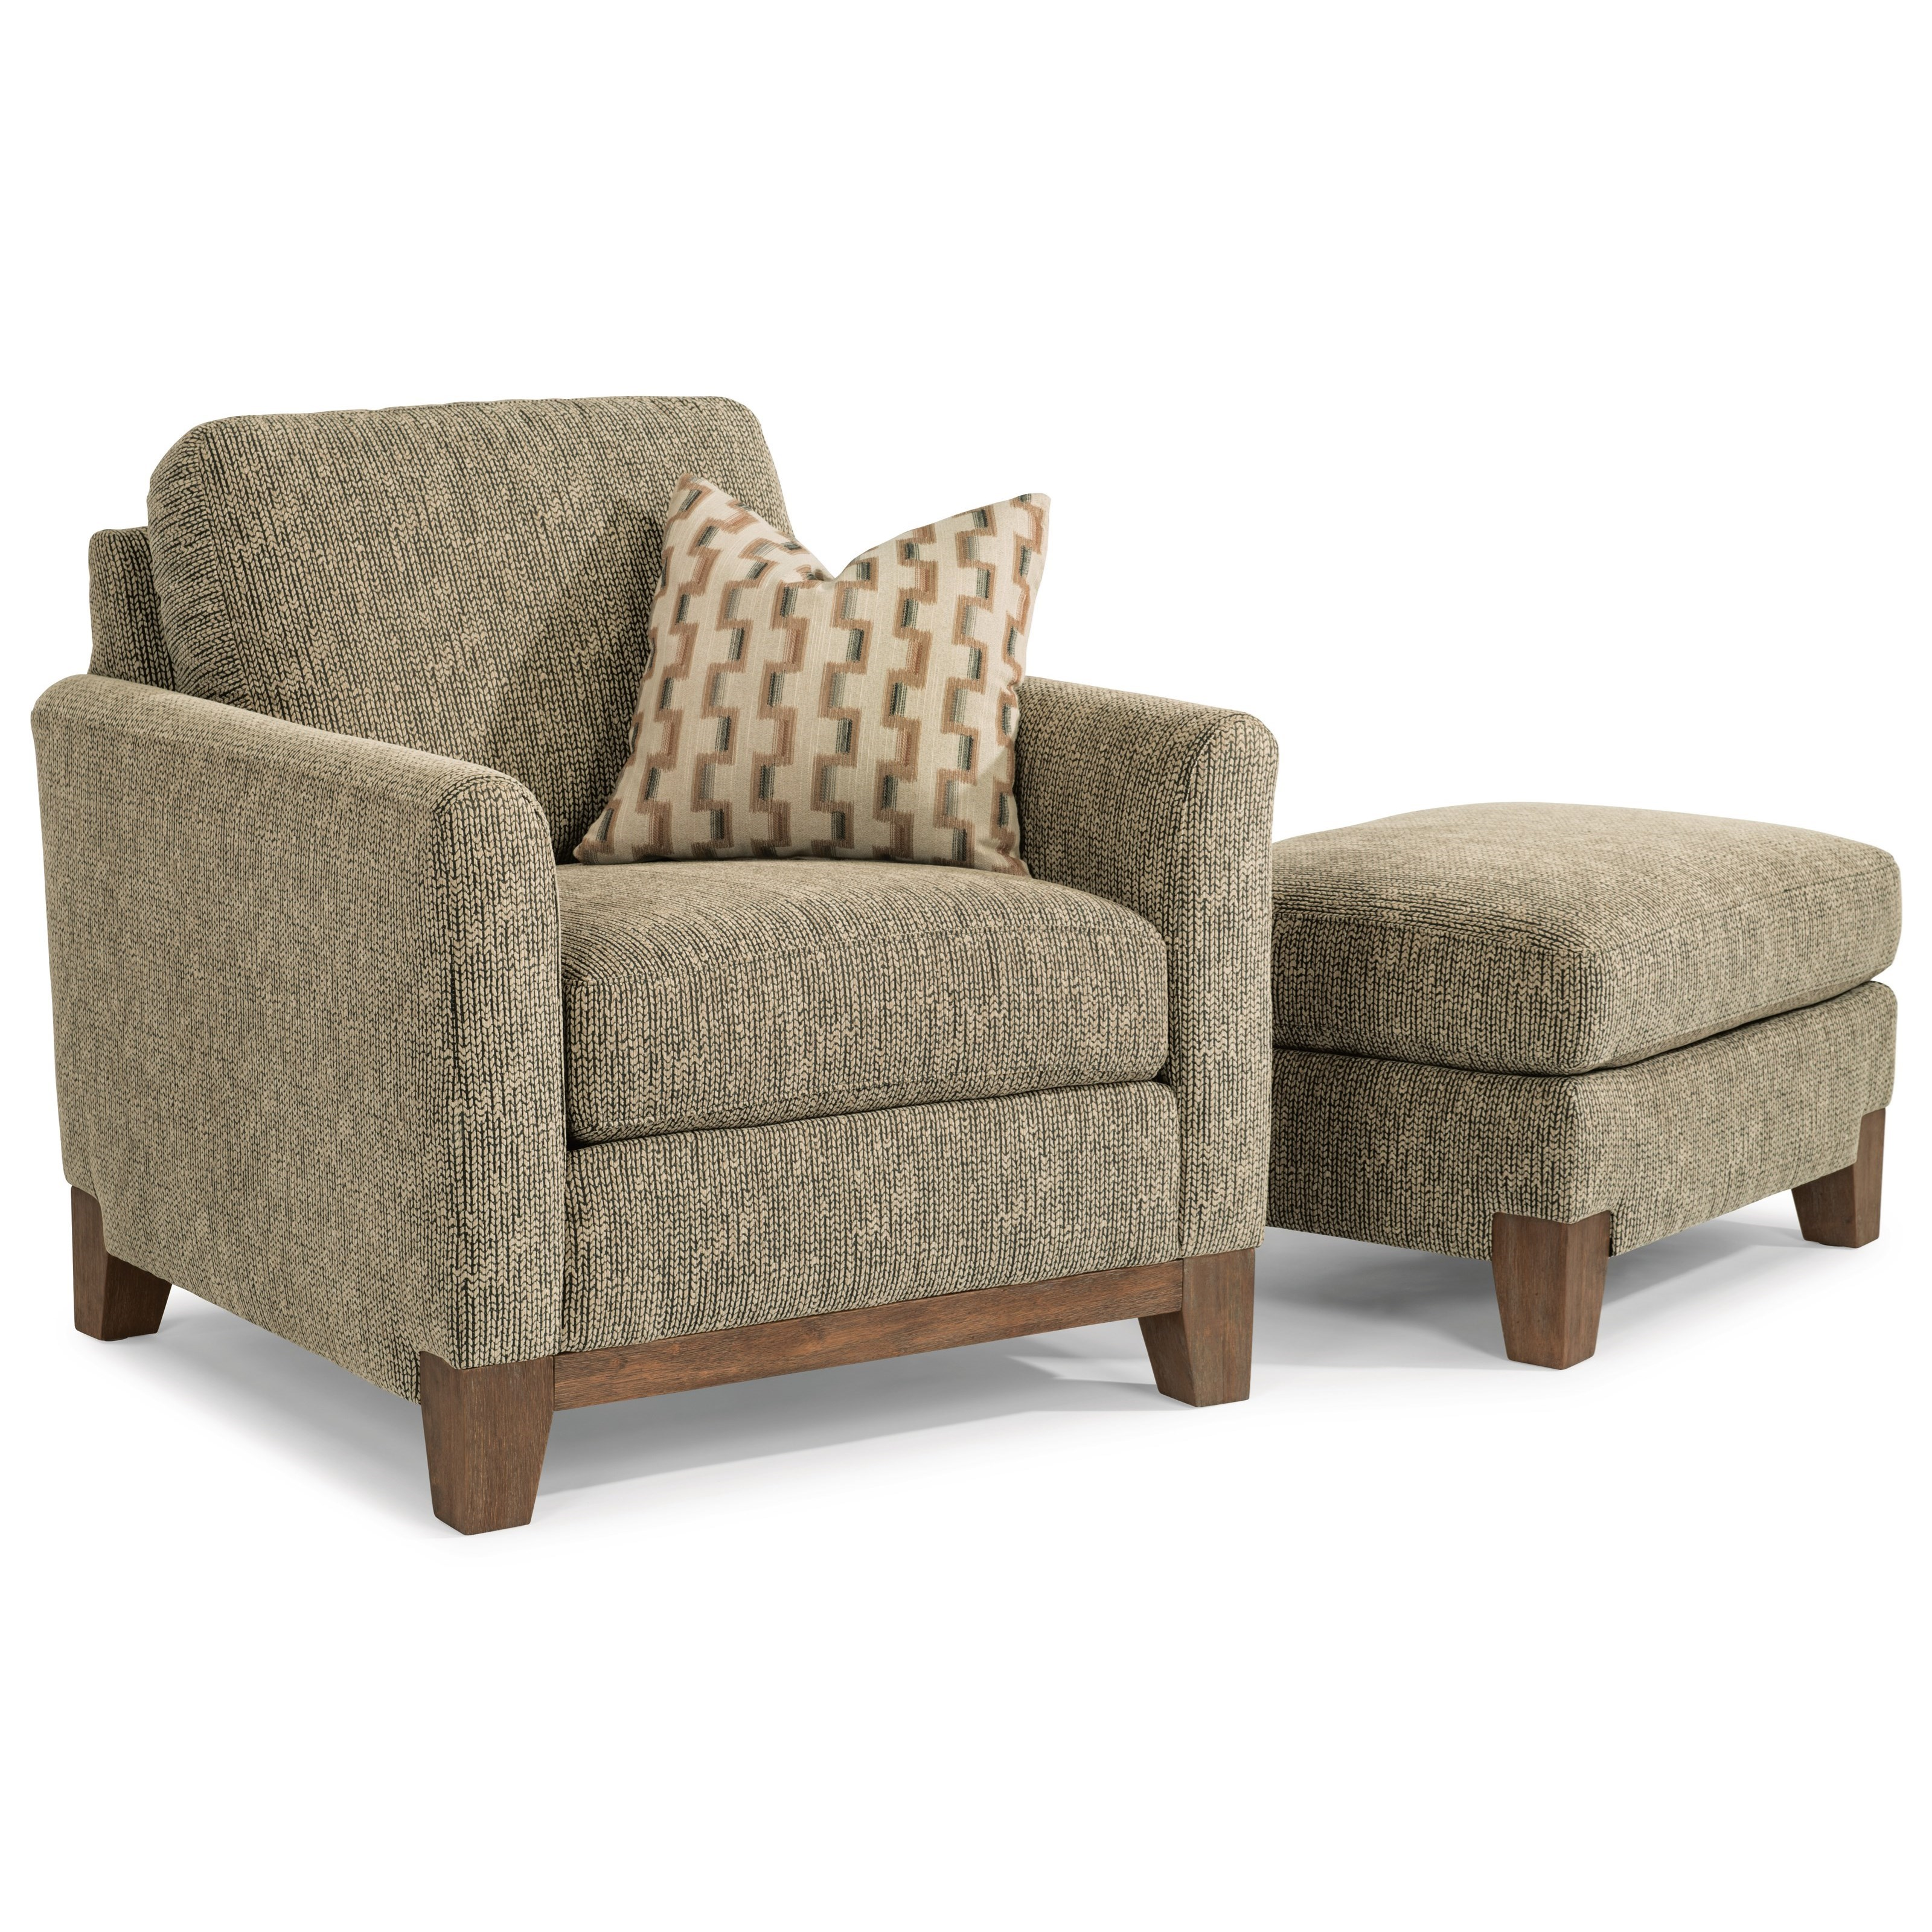 Flexsteel Hampton Transitional Chair And Ottoman Set With